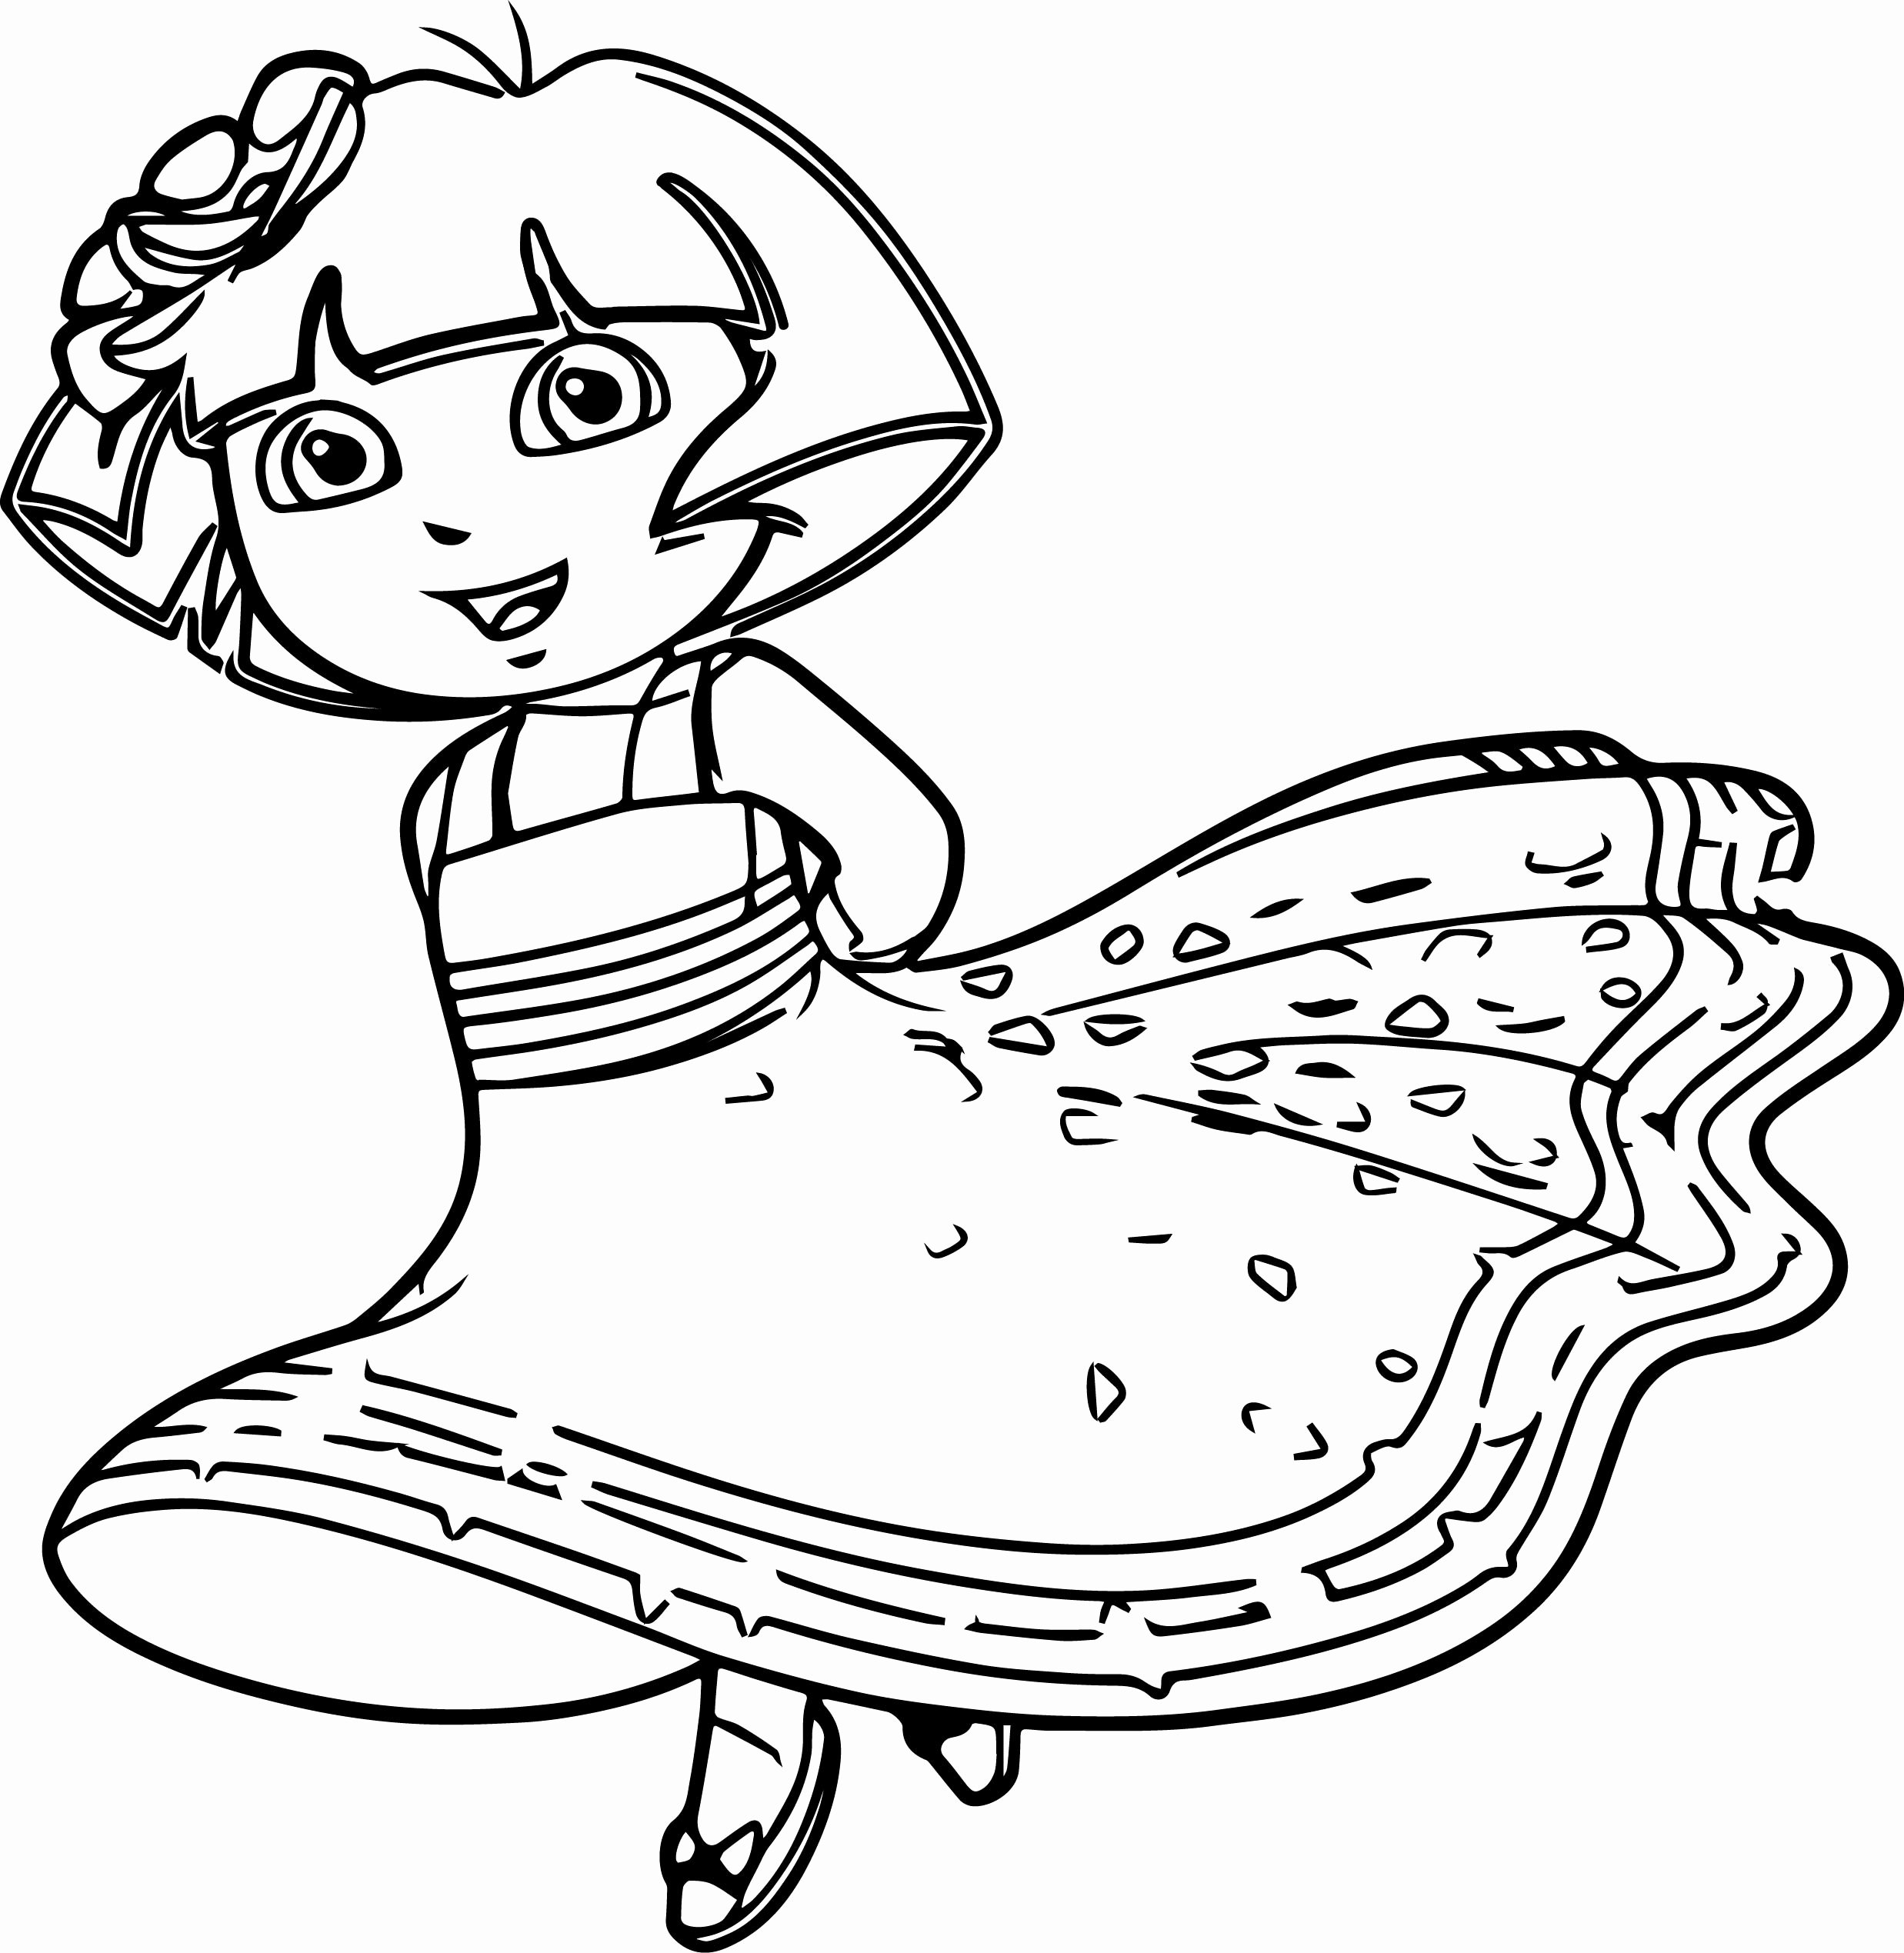 dora drawing pictures princess drawing for kids at getdrawings free download pictures drawing dora